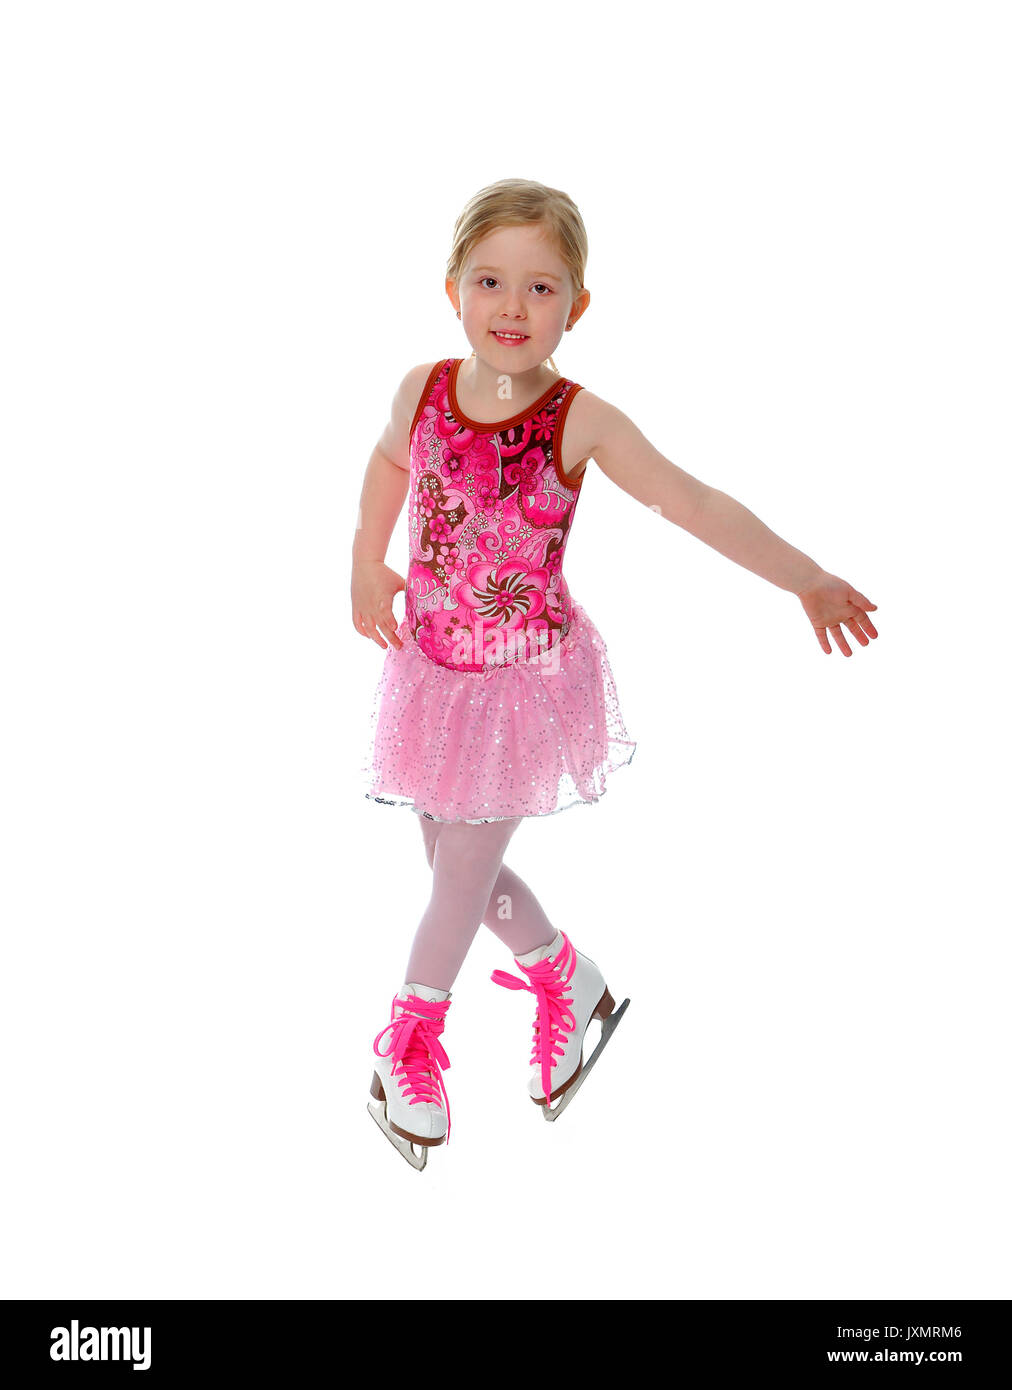 Six year old figure skater or ice dancer active in a winter sport - Stock Image